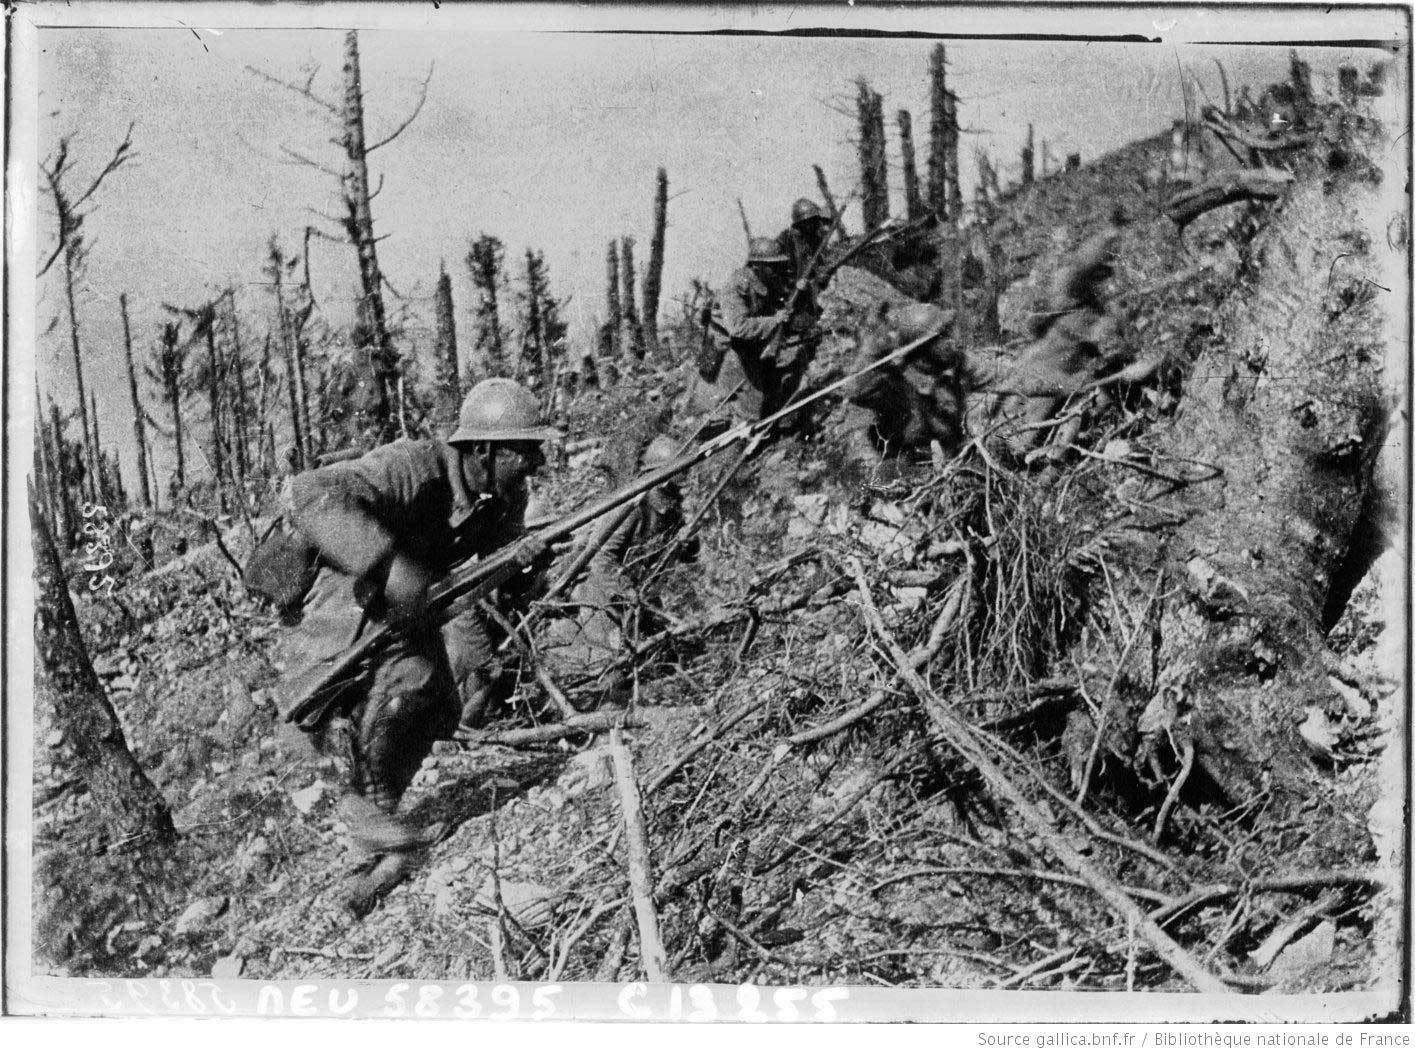 French infantry charging in Argonne, October 1915, equipped with the new Adrian helmet and the Lebel rifle with fixed bayonets.